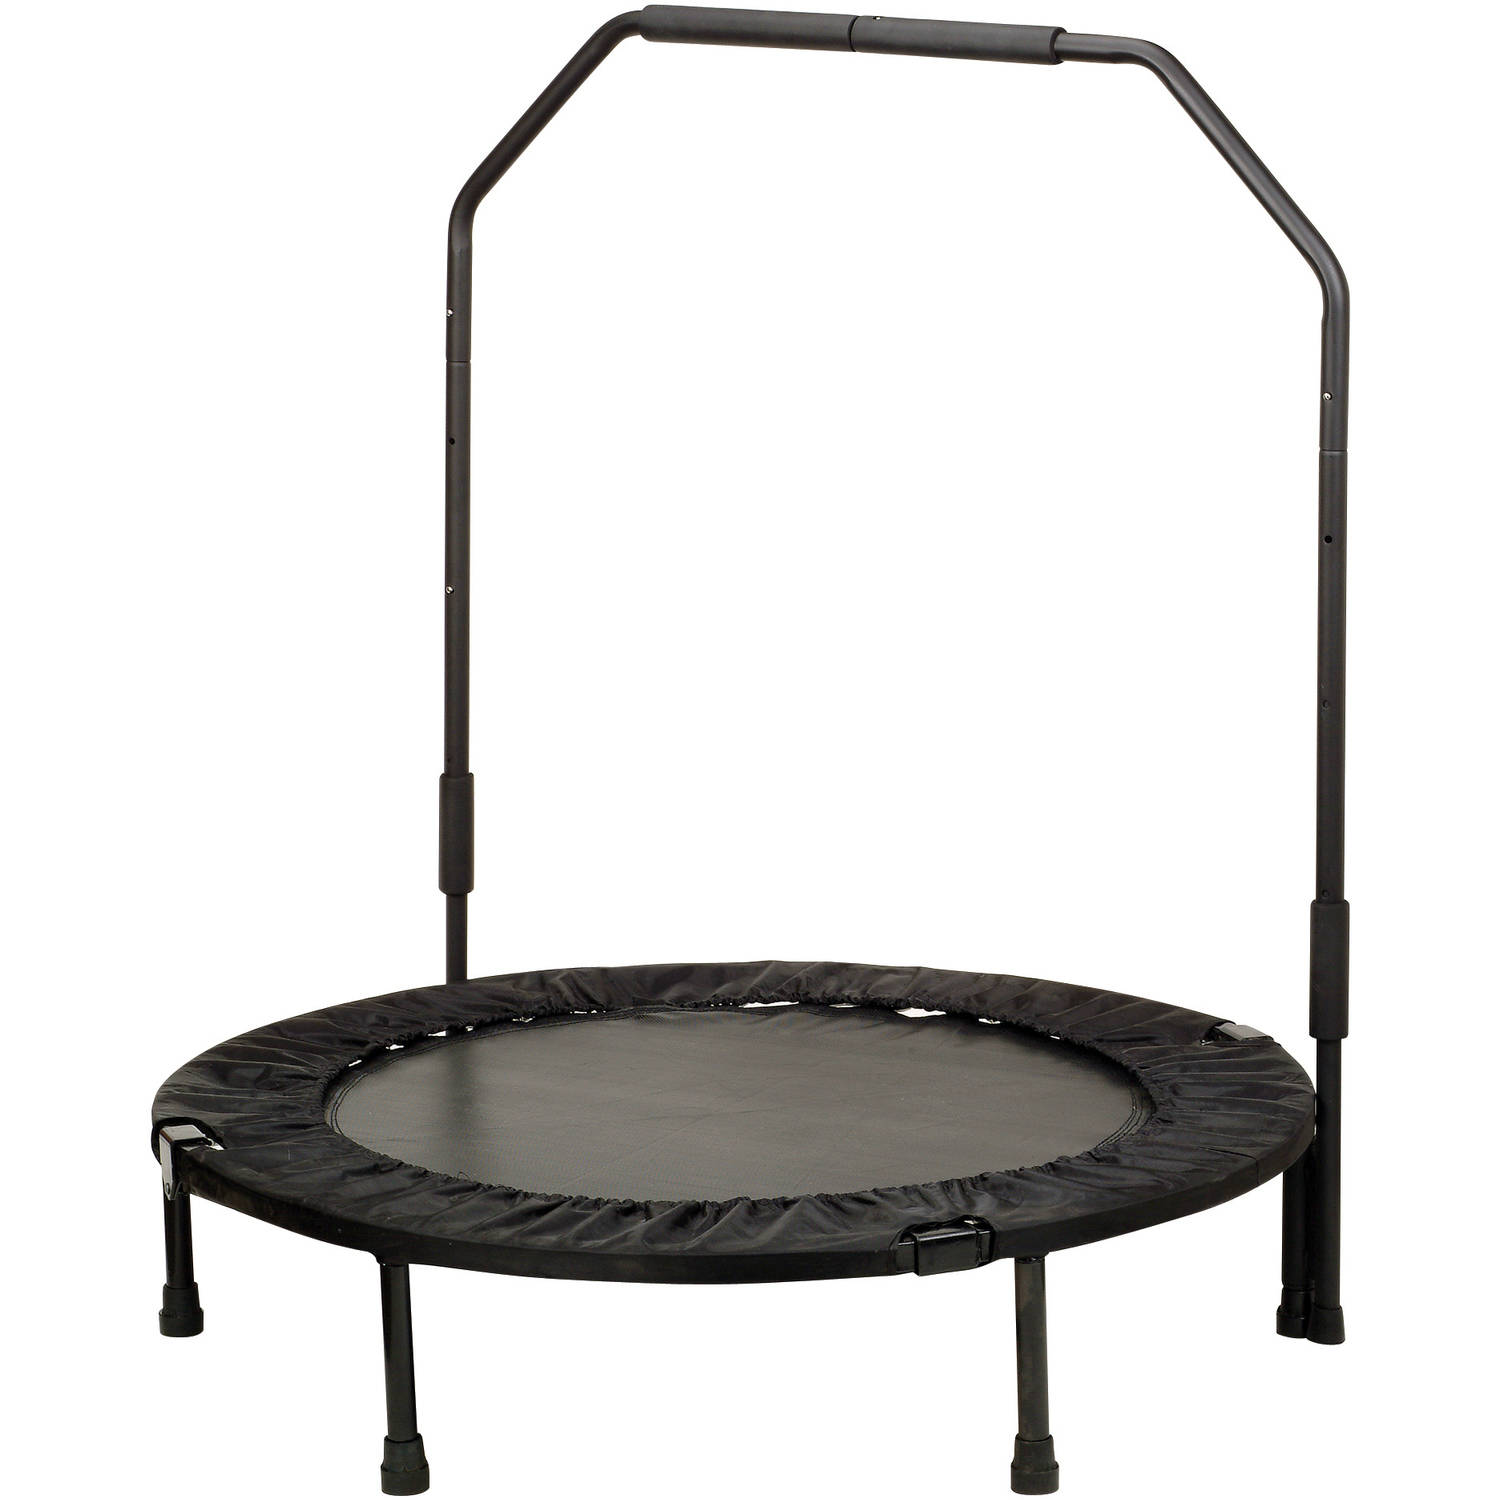 "Sunny Health and Fitness 40"" Foldable Trampoline With Handlebar"